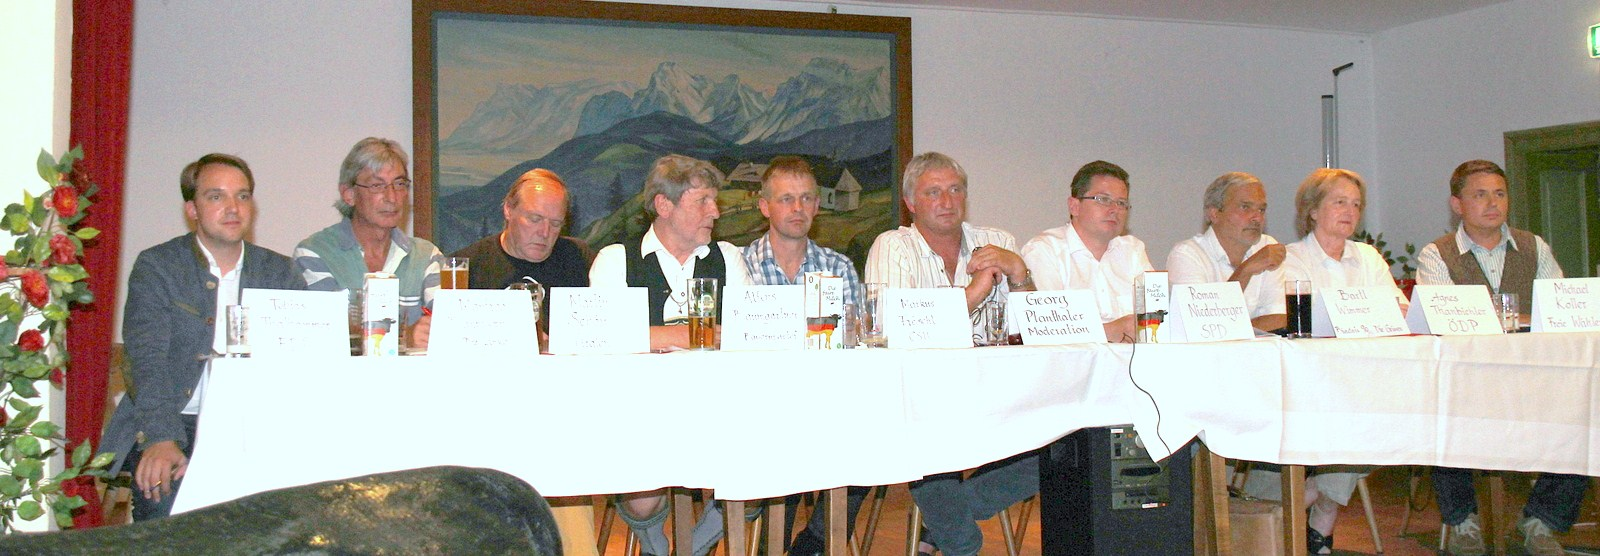 von links: Tobias Thalhammer (FDP), Manfred Dannhorn (Linke), Martin Schön (Piraten), Alfons Baumgartner (BP), Markus Fröschl (CSU), Georg Planthaler(Moderator), Roman Niederberger (SPD), Bartl Wimmer (Grüne), Agnes Thannbichler (ÖDP), Michael Koller (FW)